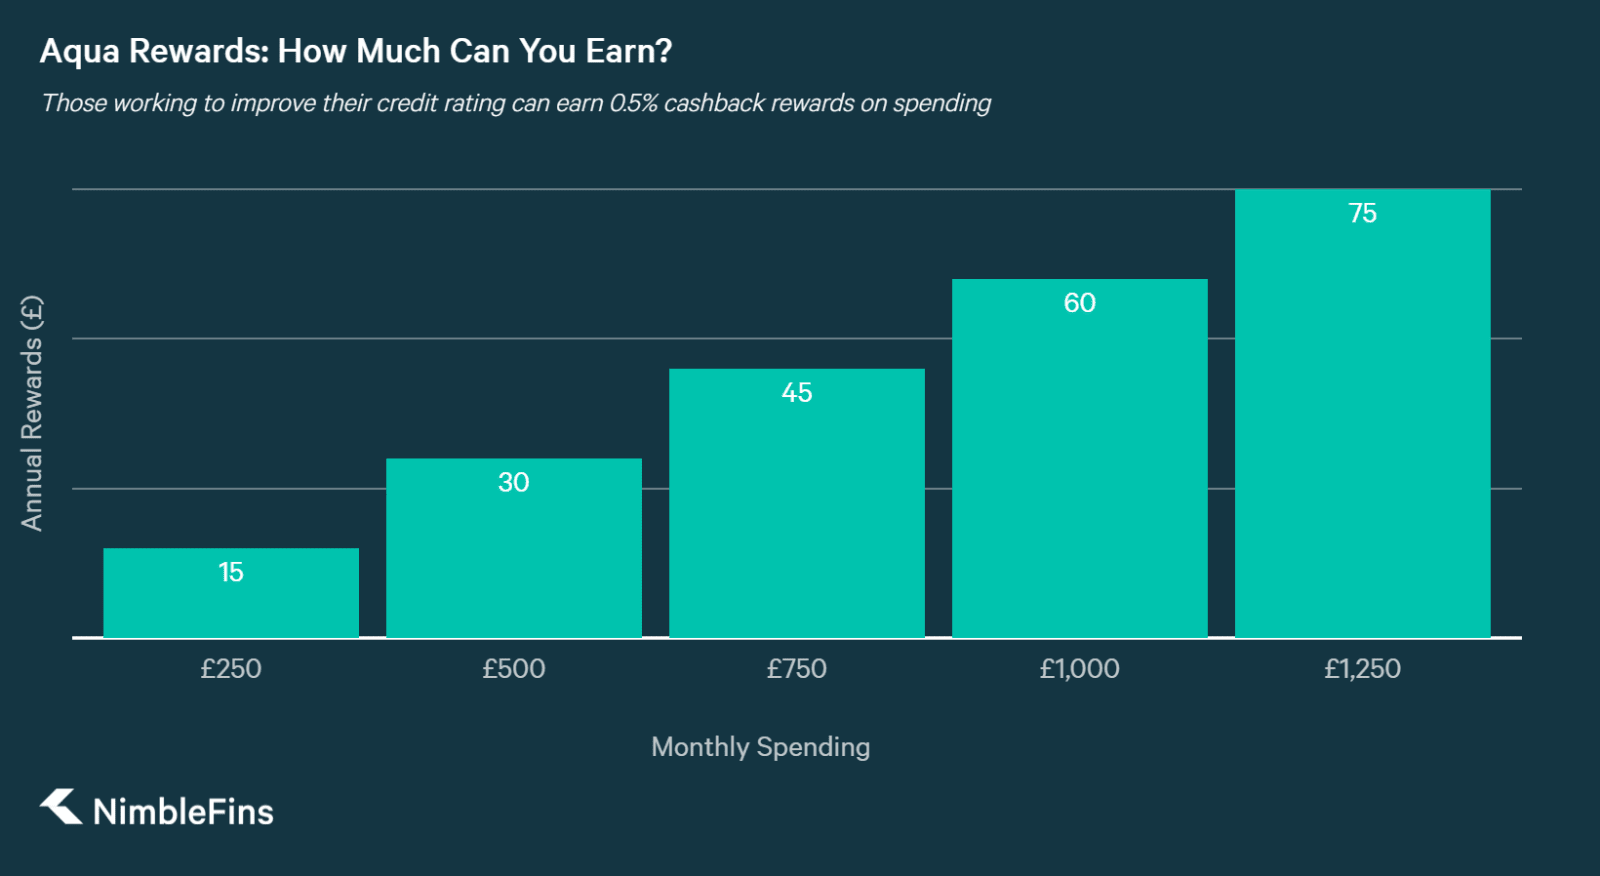 chart showing what you can earn on the aqua reward credit card